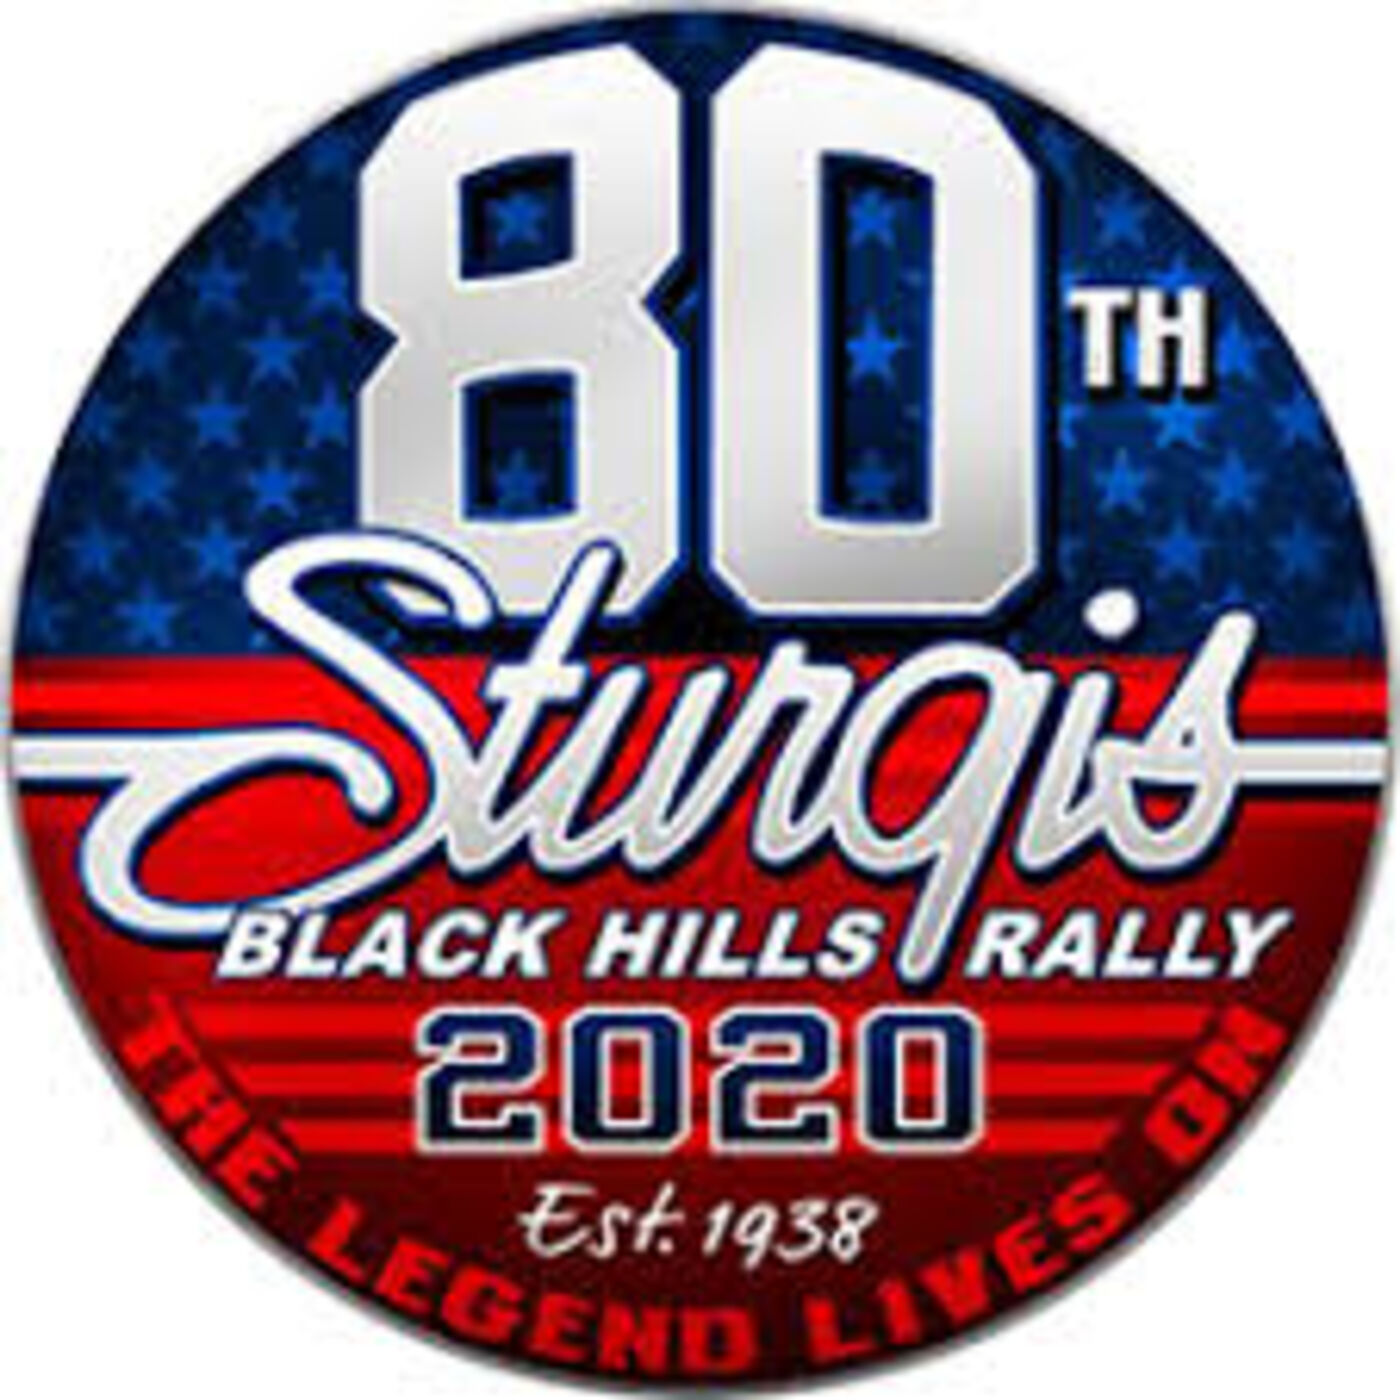 Episode 245 - Interview with Sturgis Motorcycle Rally Director Jerry Cole